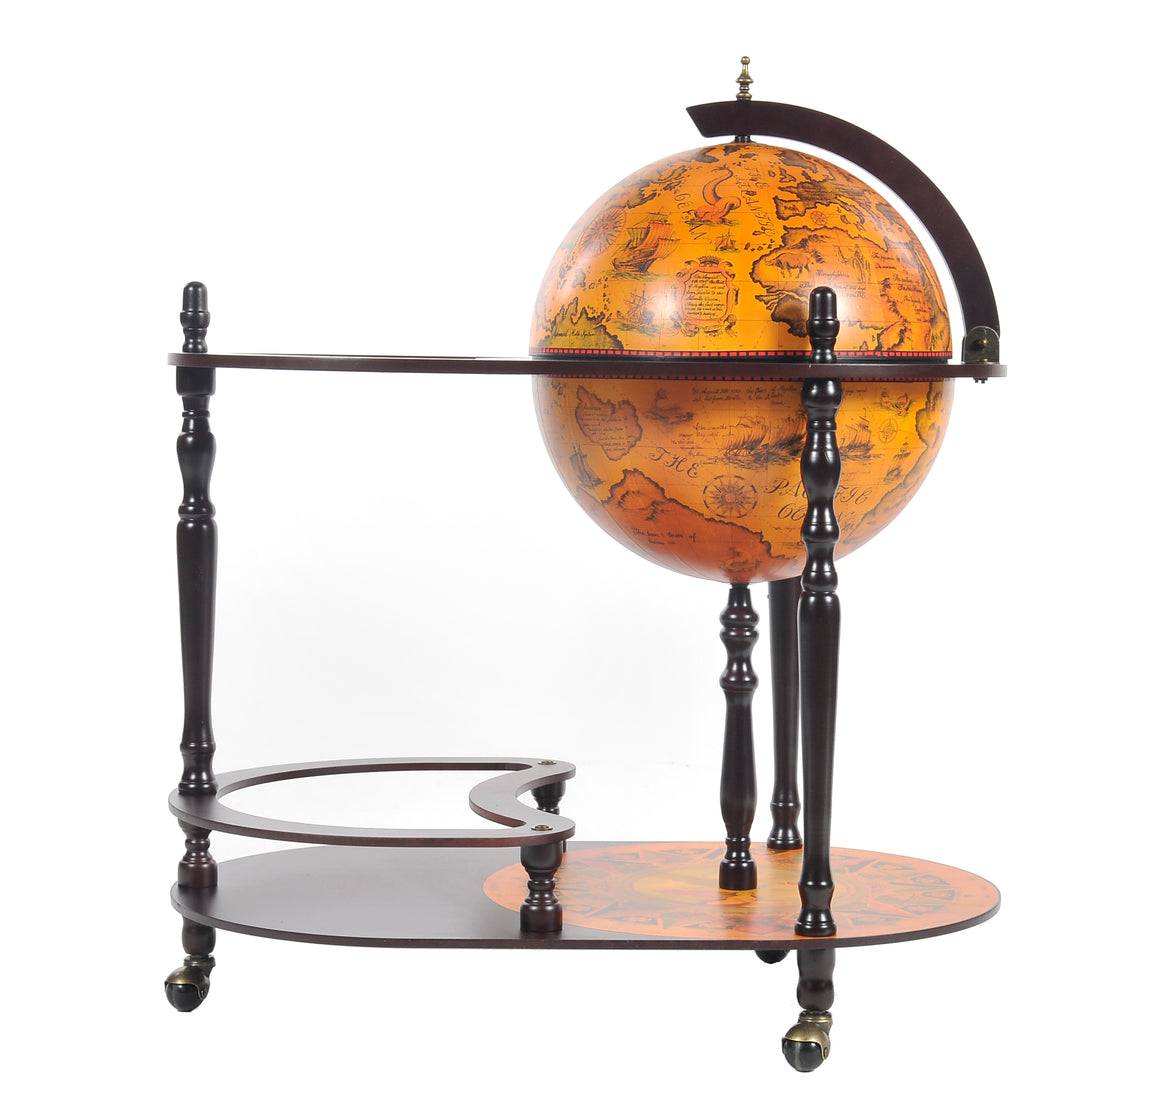 Old Modern Handicrafts 16.5 inch World Globe Trolley - Decor and Gifts Galore